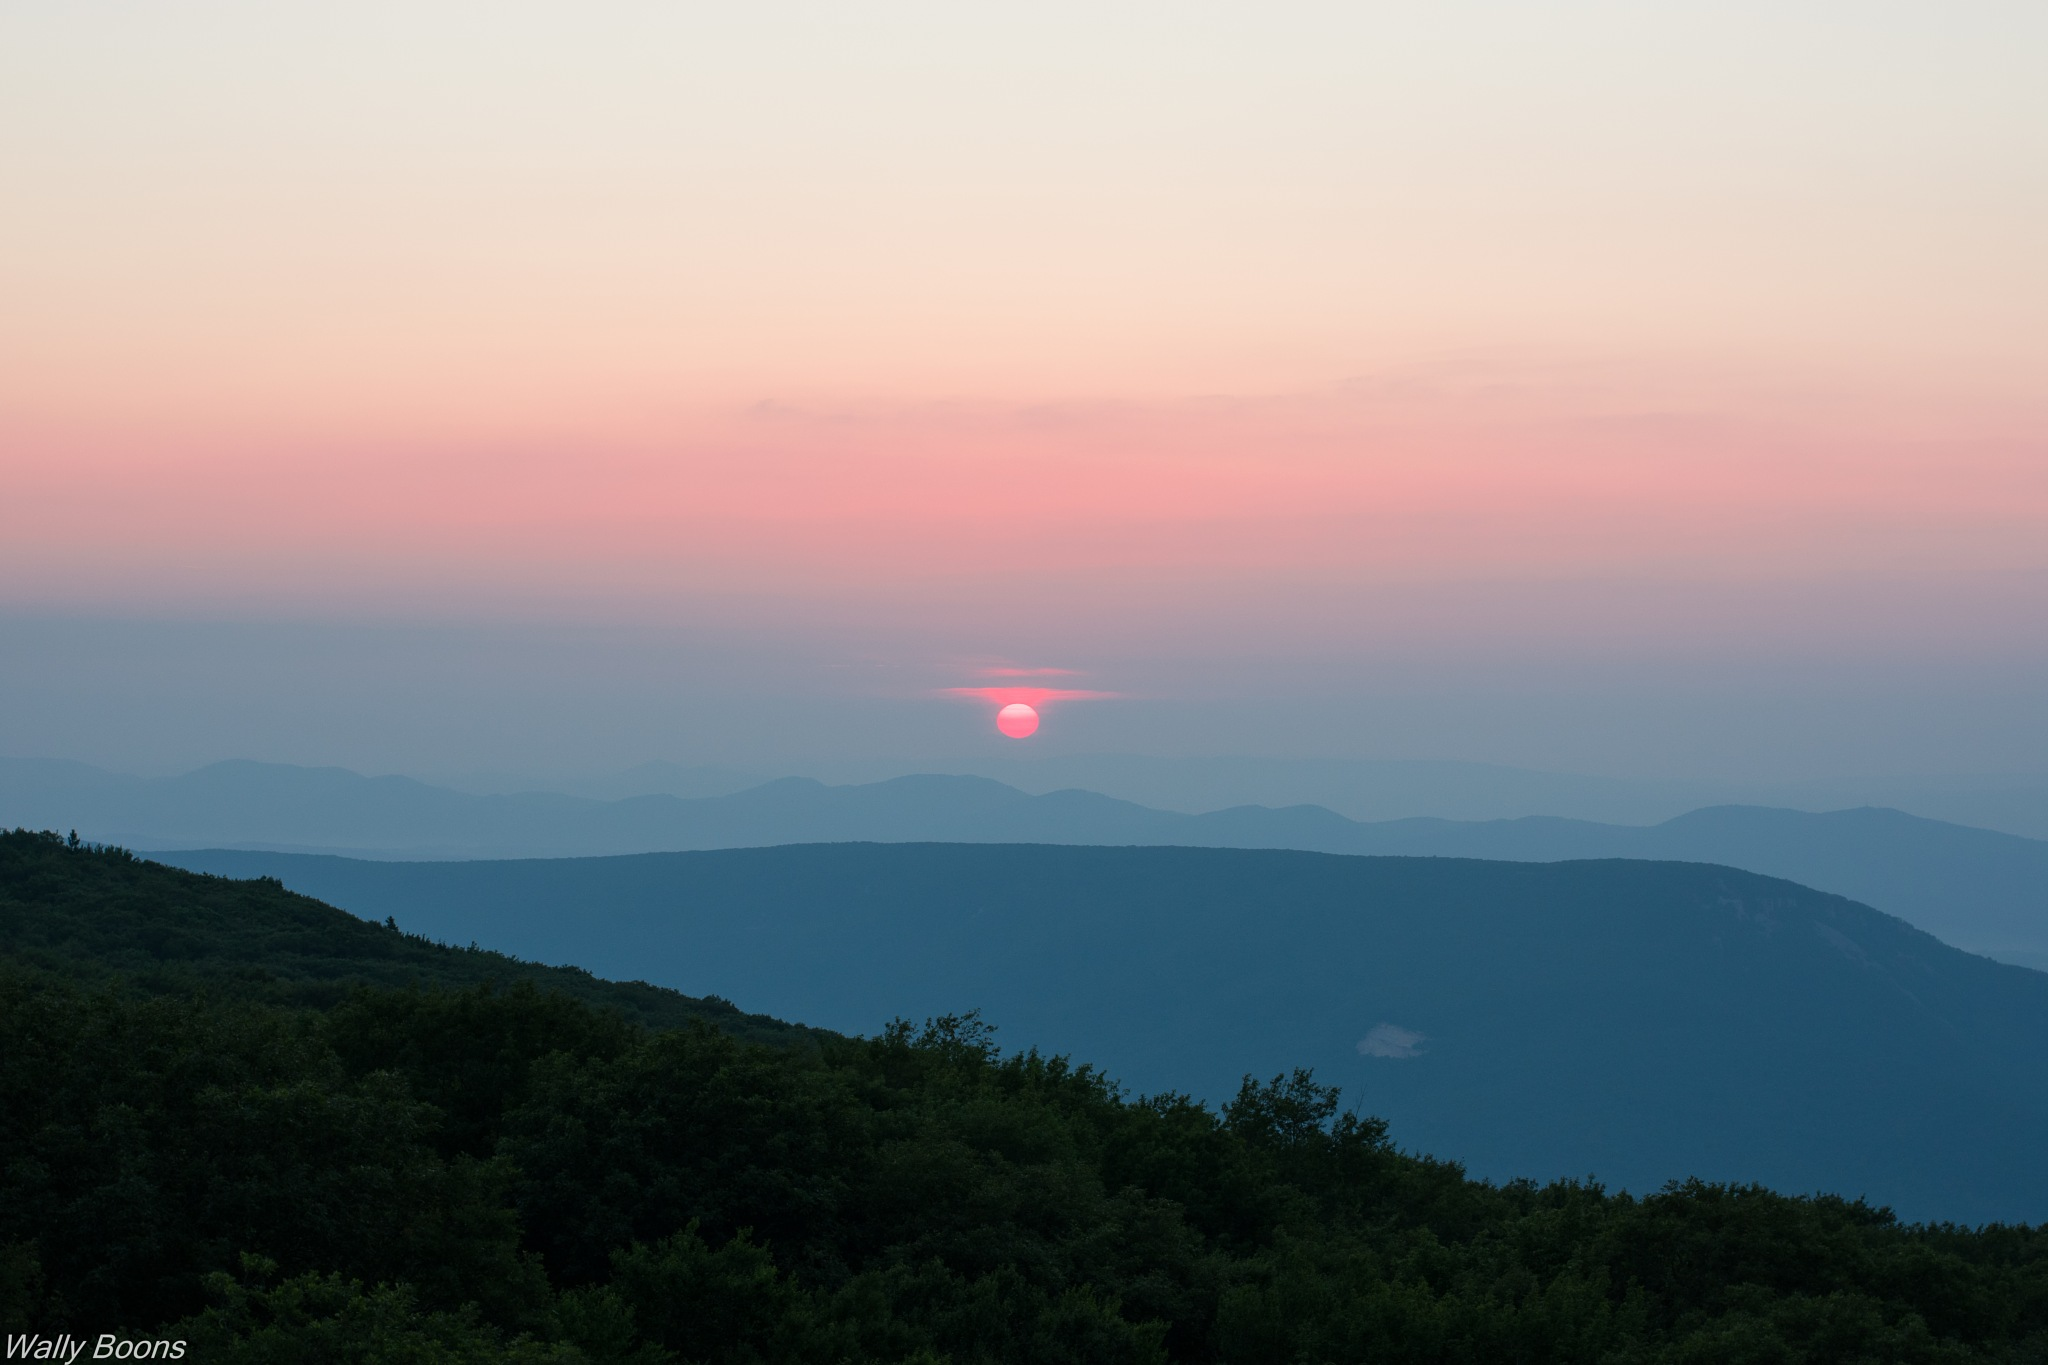 Sunrise view by Wally Boons